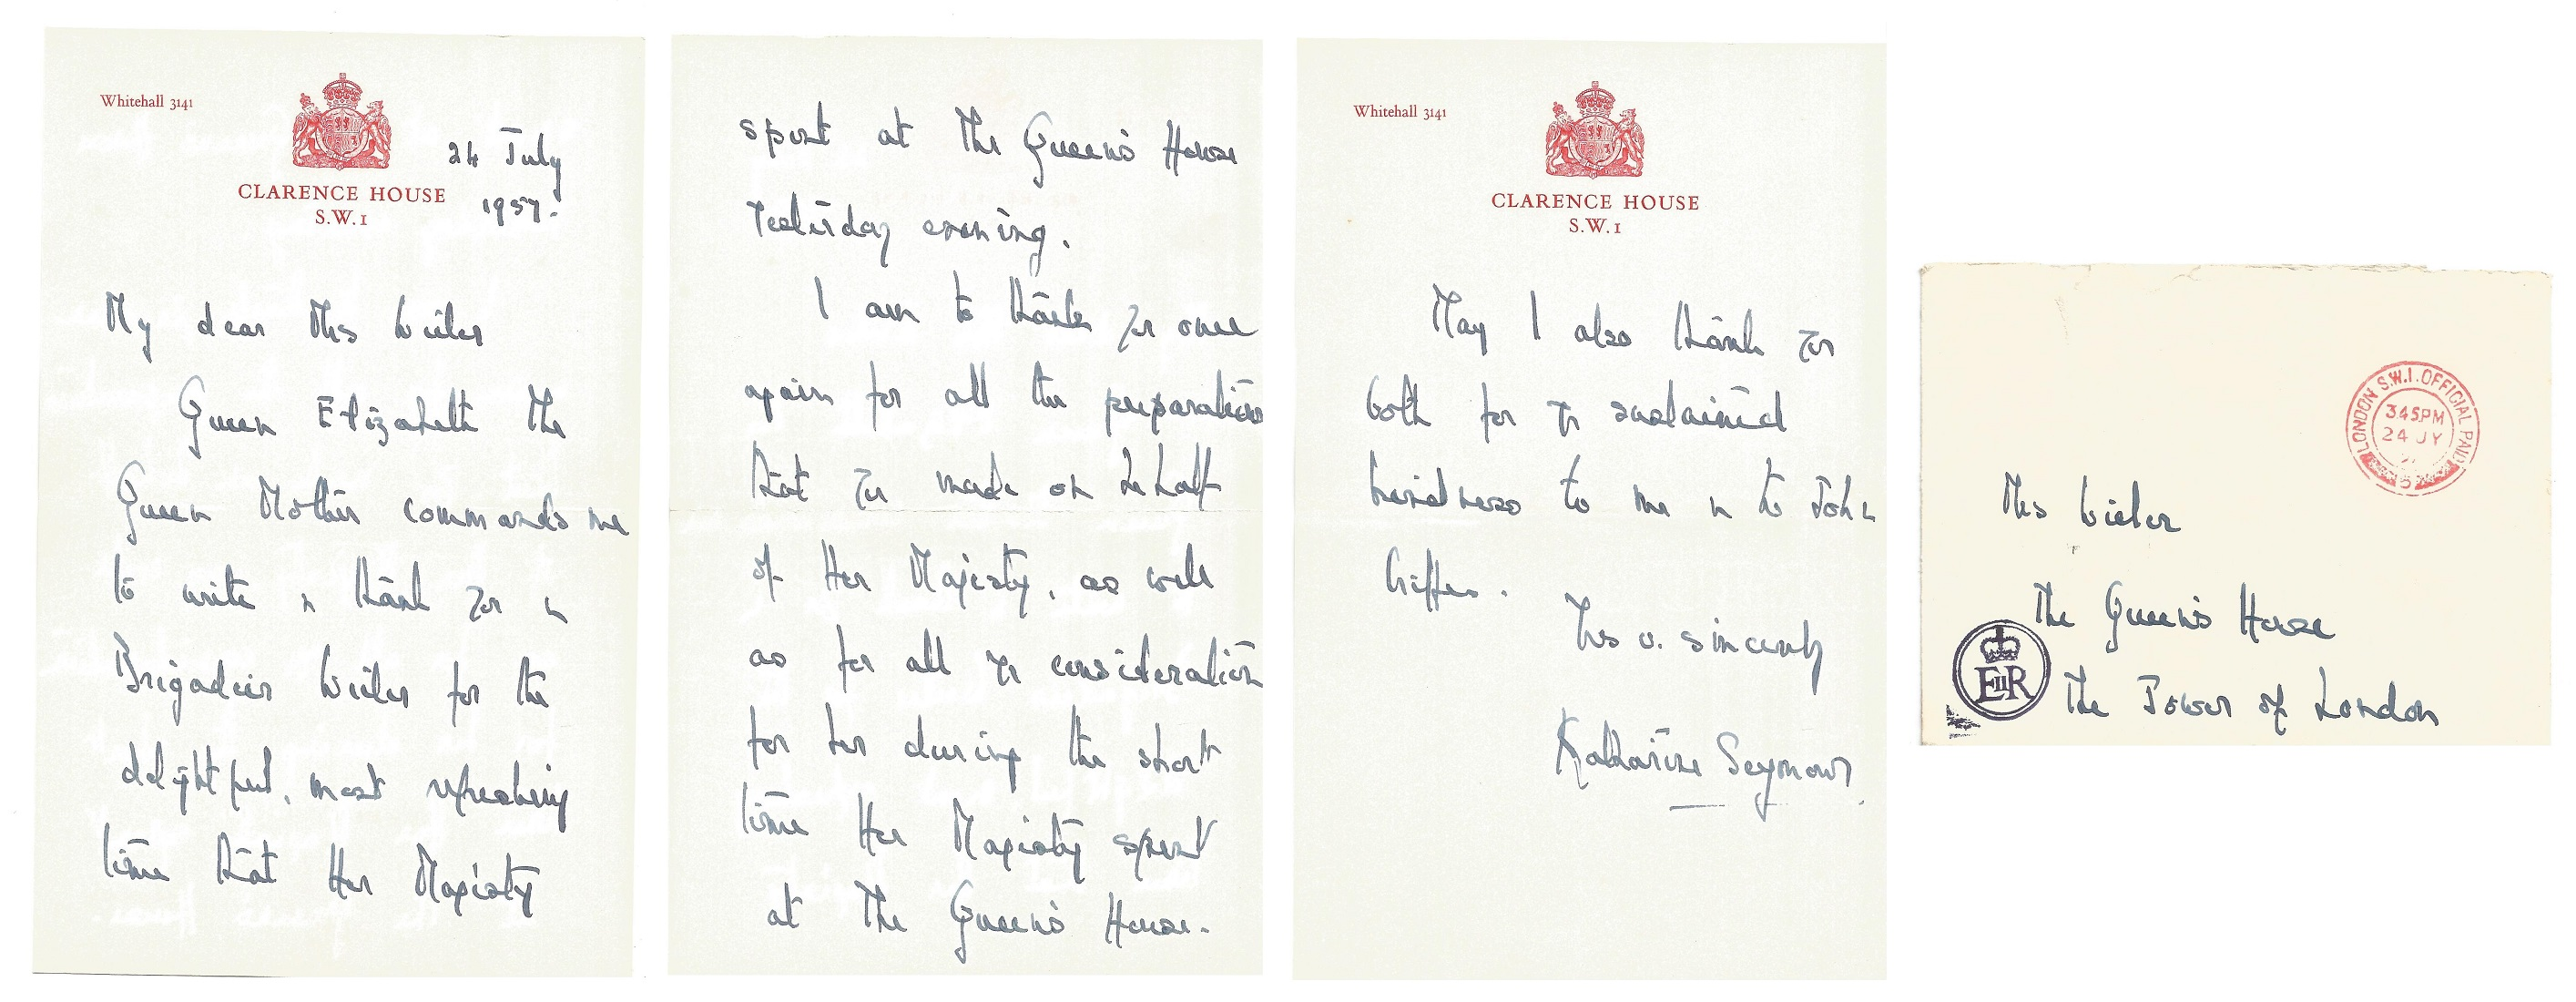 Katherine Seymour ALS on Clarence House headed paper dated 24th July 1957. Letter thanks recipient